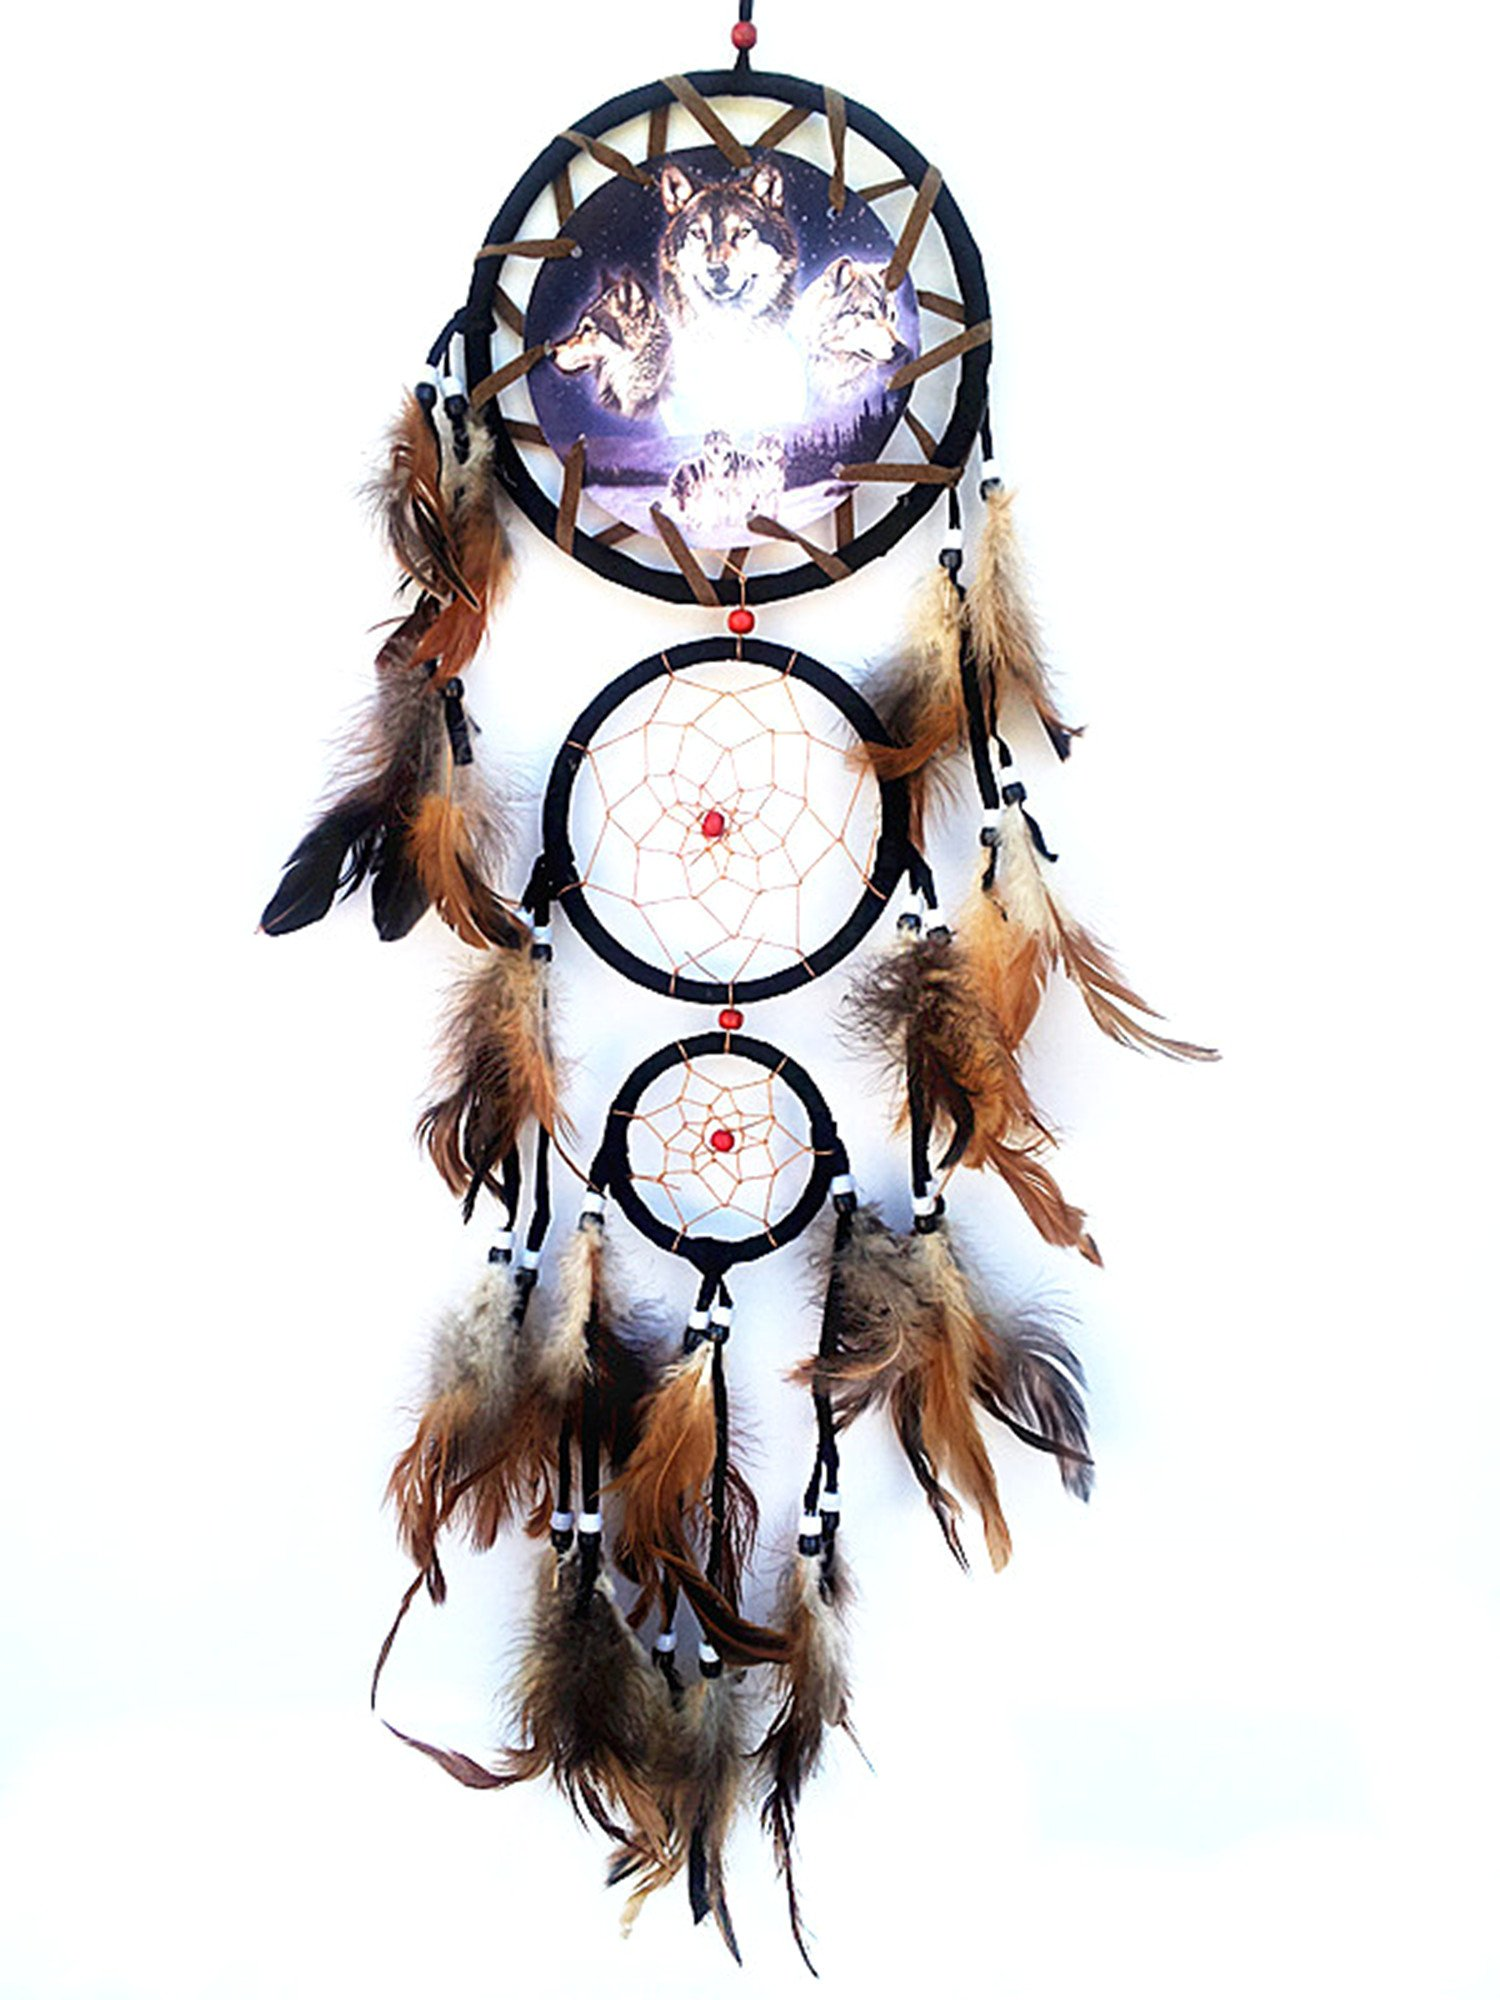 Handmade Dream Catcher with Feathers Wall Hanging Decor Ornament (With Betterdecor Gift Bag)-3W